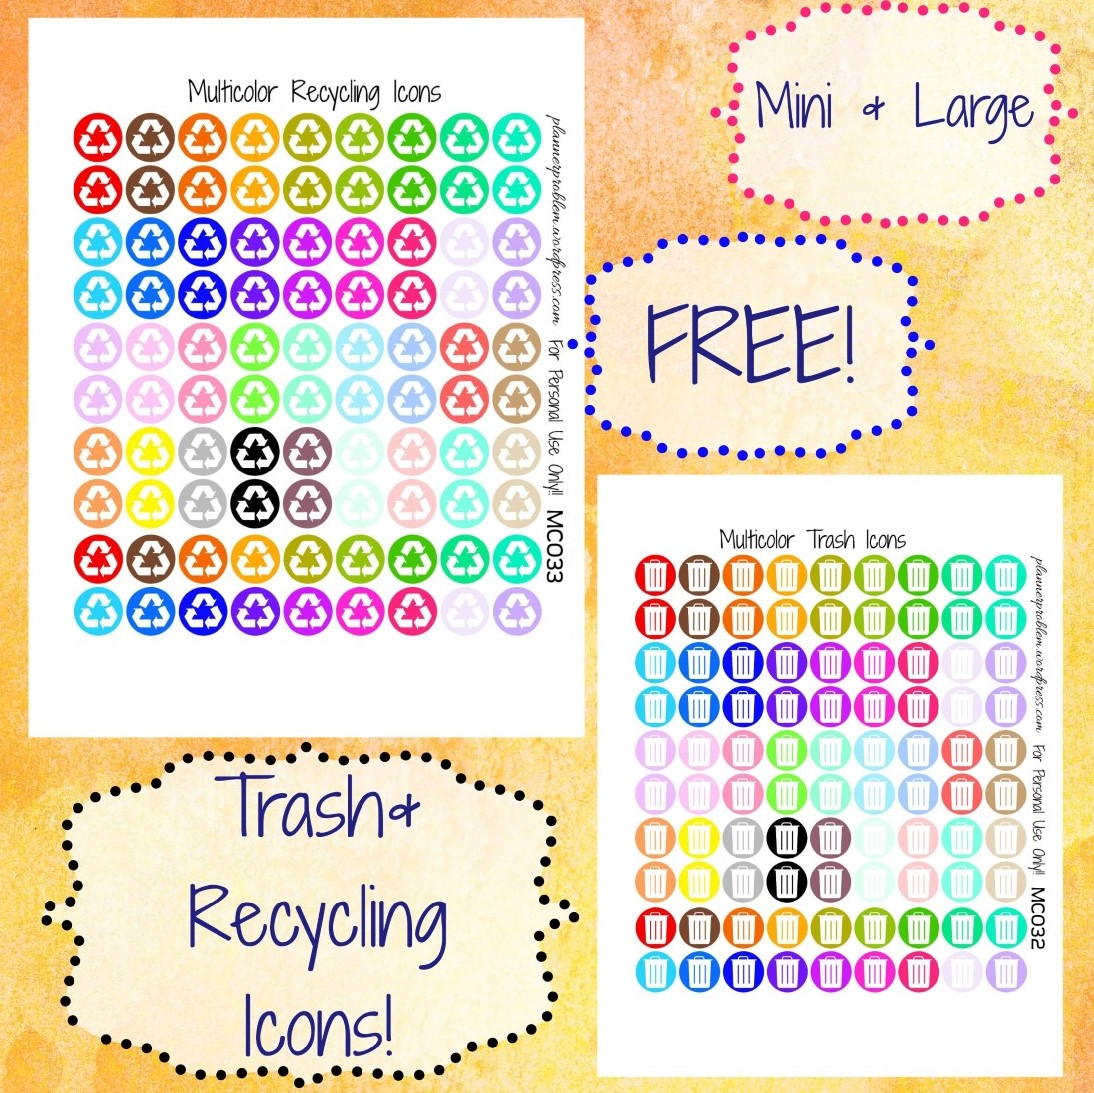 Multicolor Trash & Recycling Icons | Free Printable ...